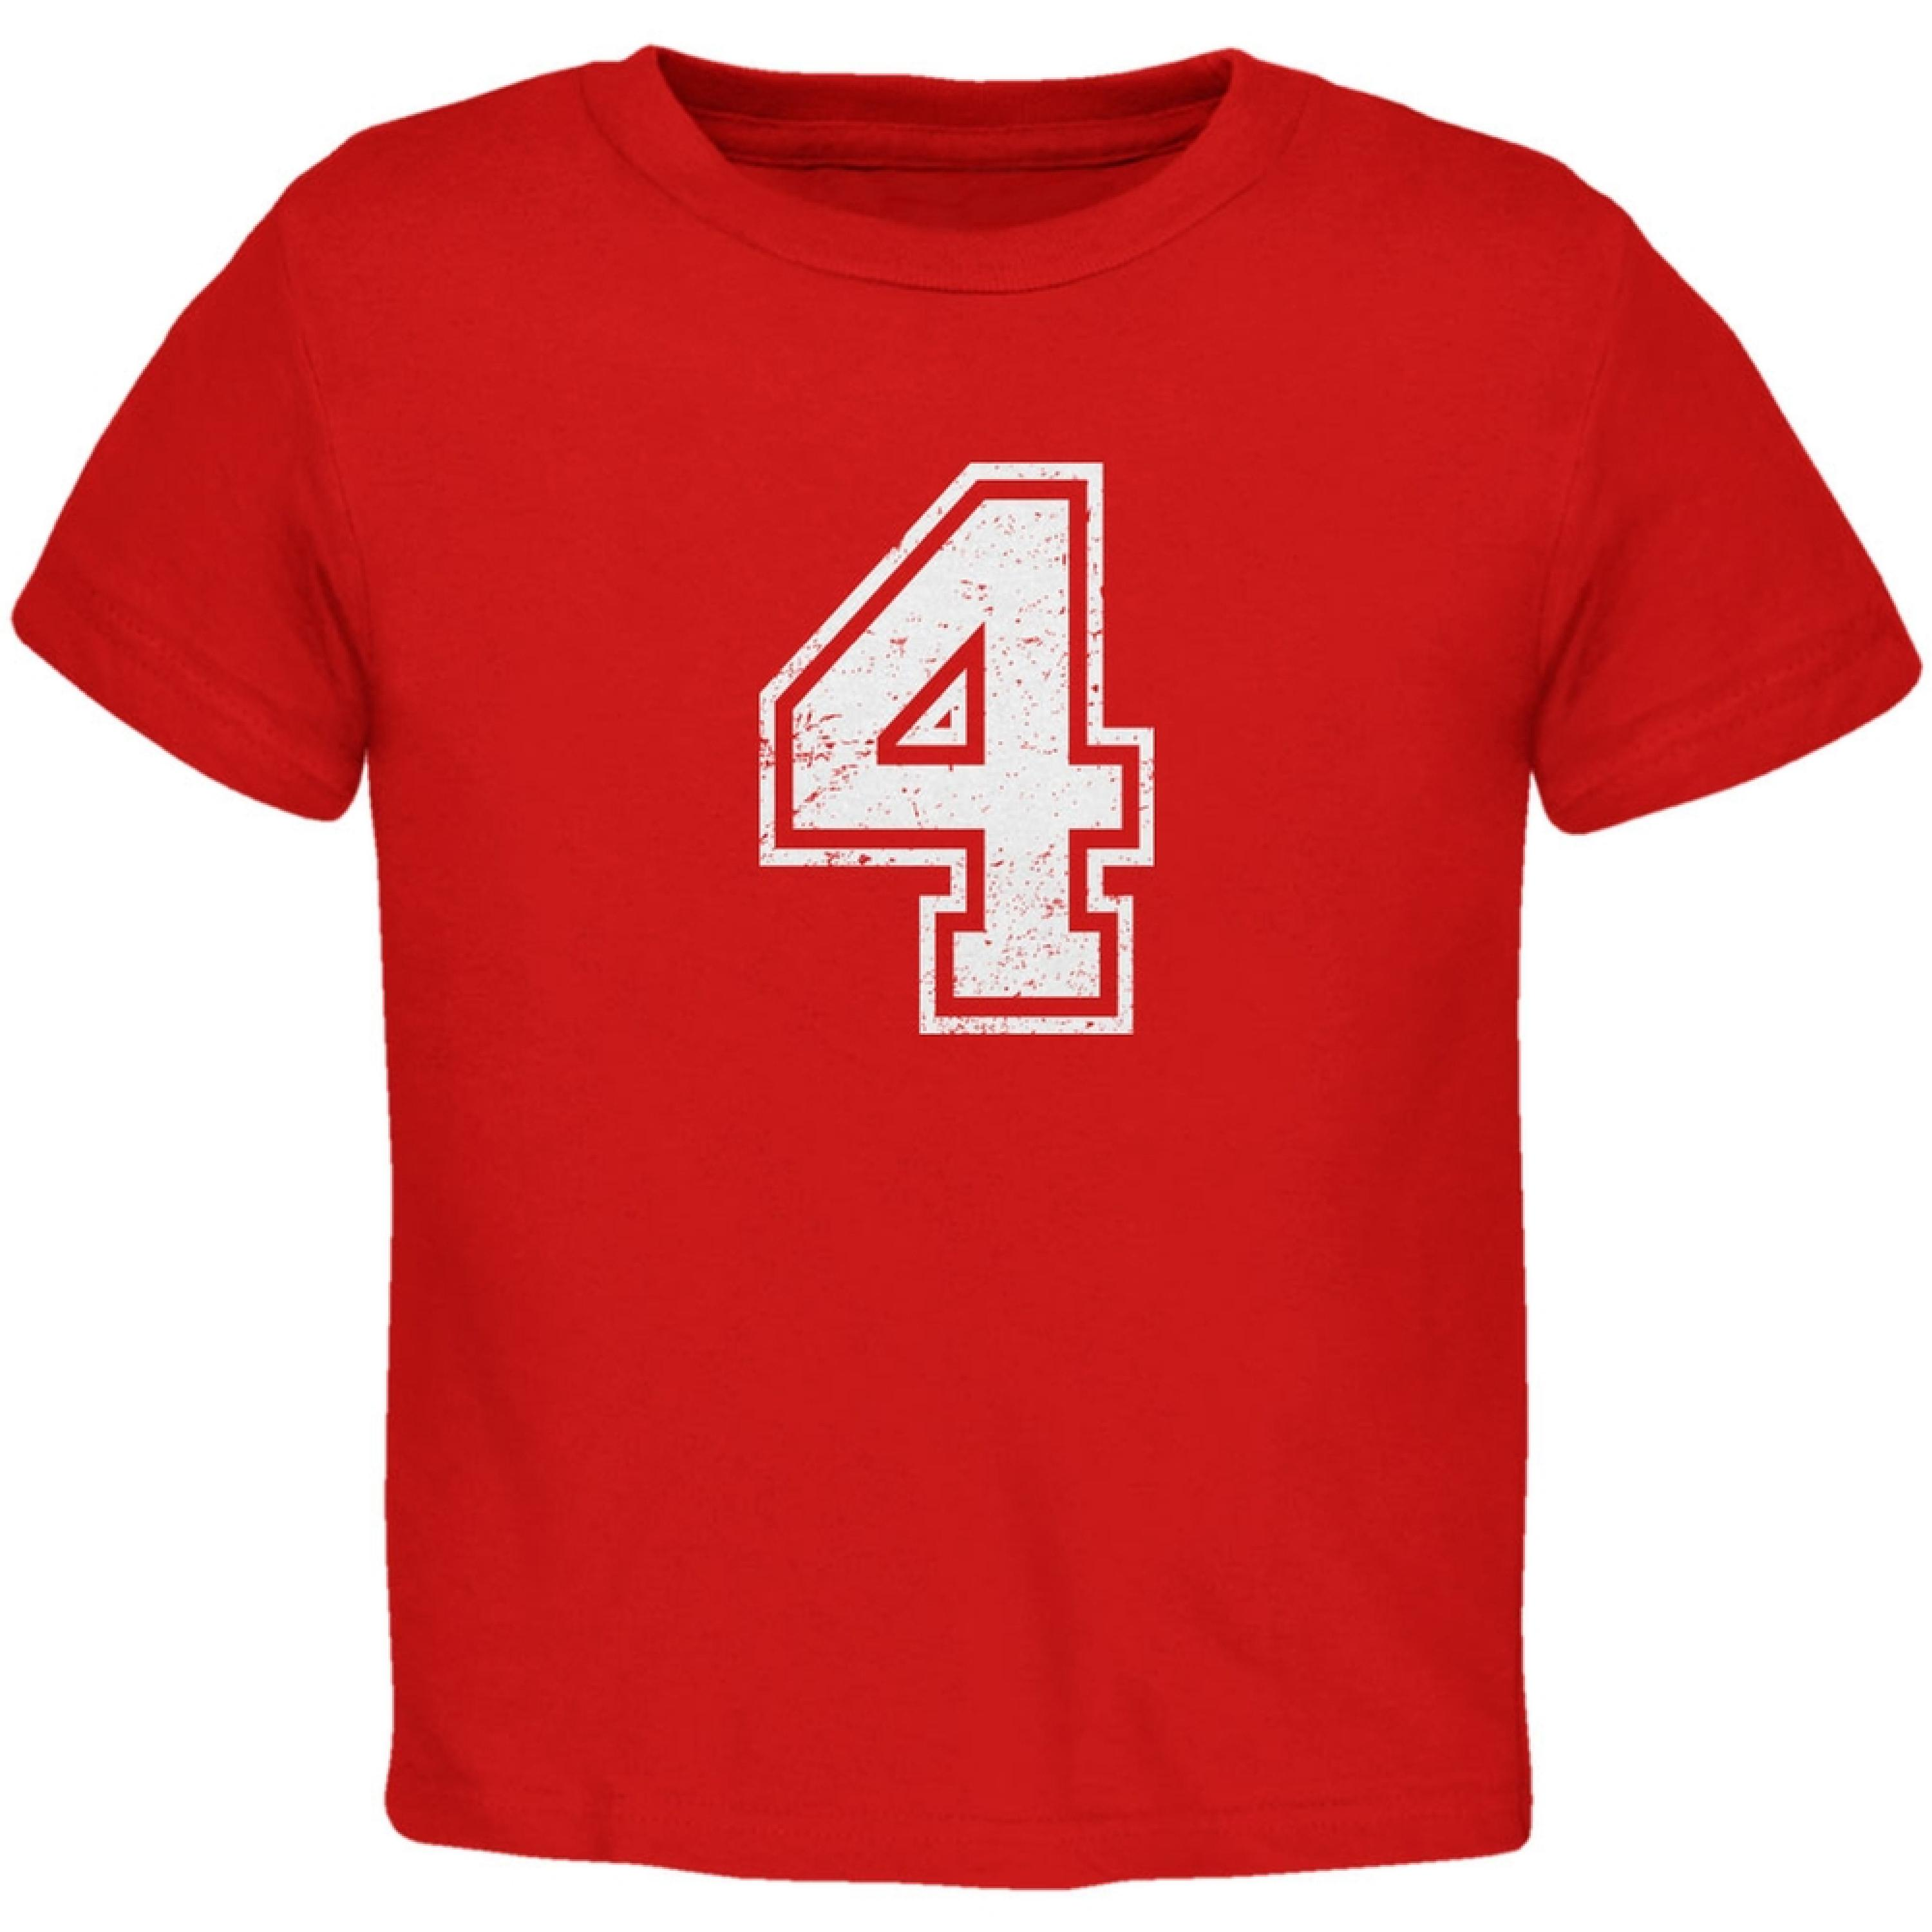 Birthday Kid Jersey 4 4th Fourth Red Toddler T-Shirt